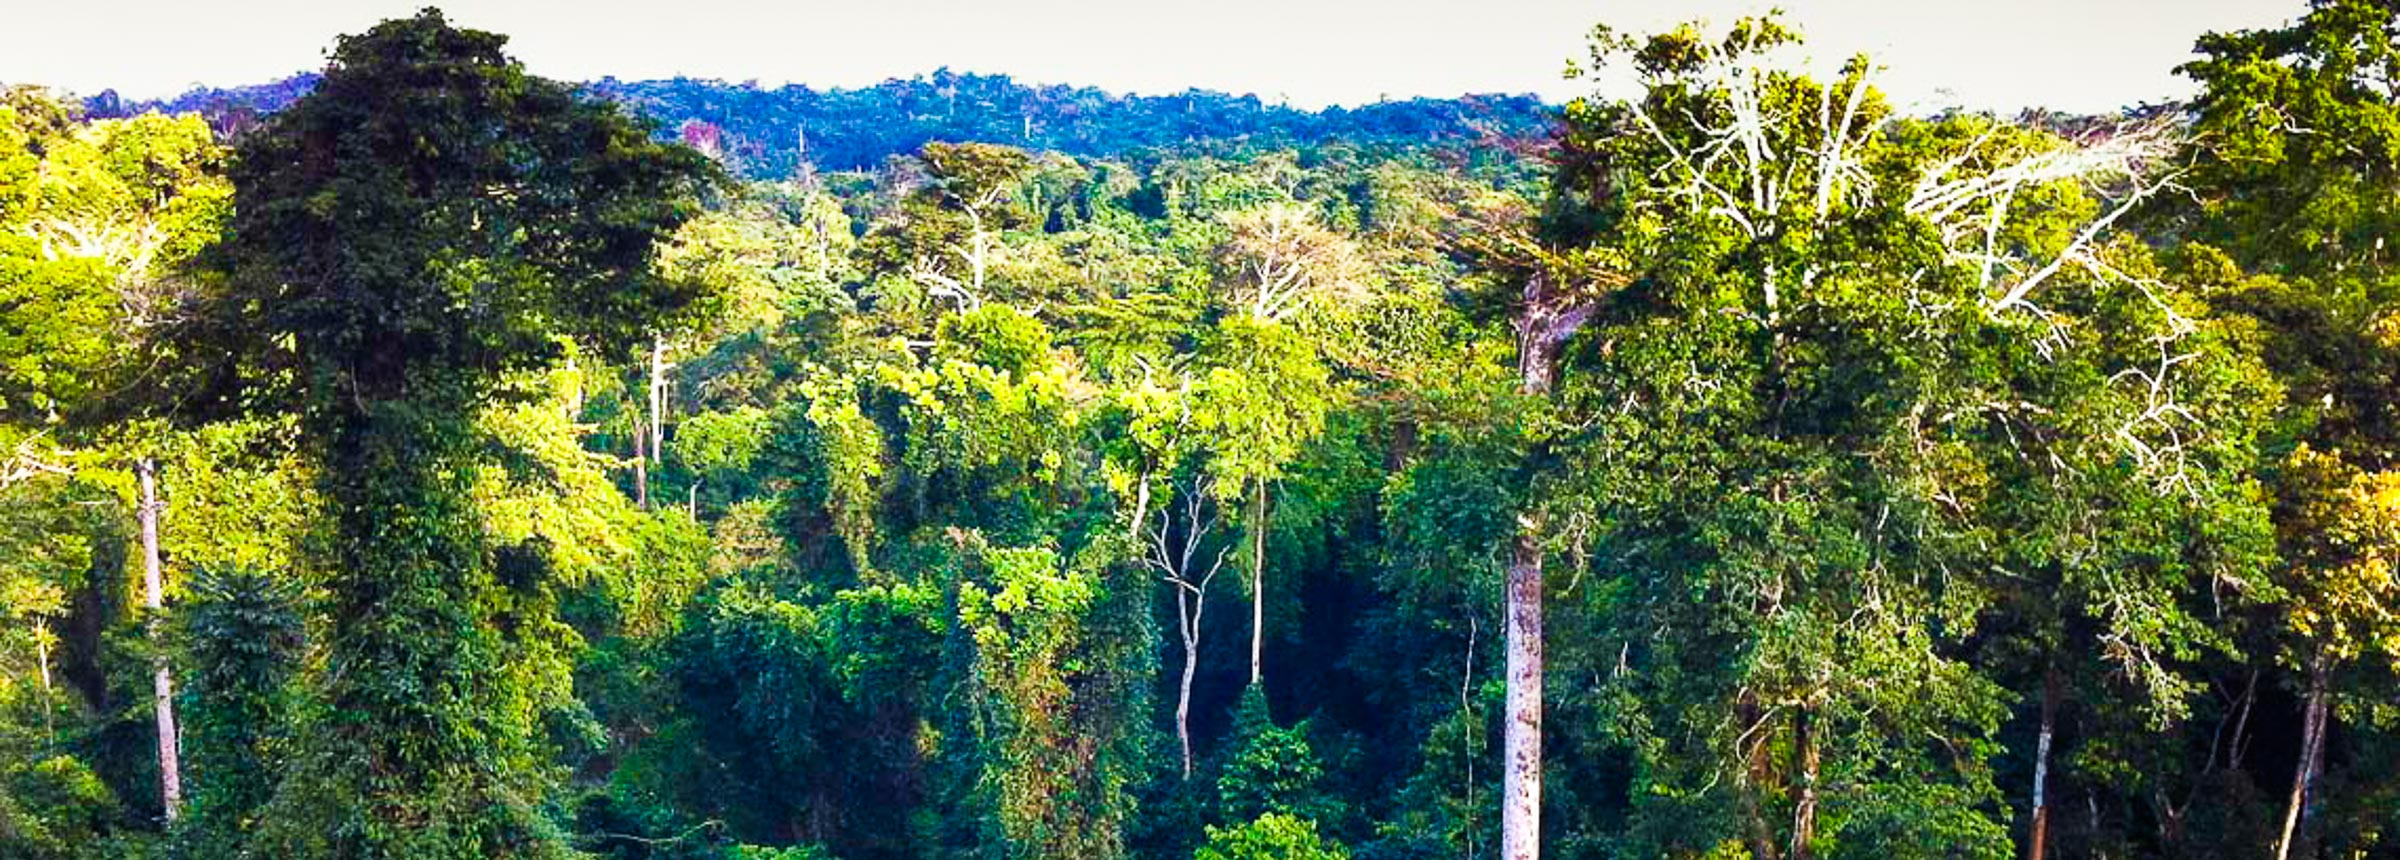 Forest in Ghana